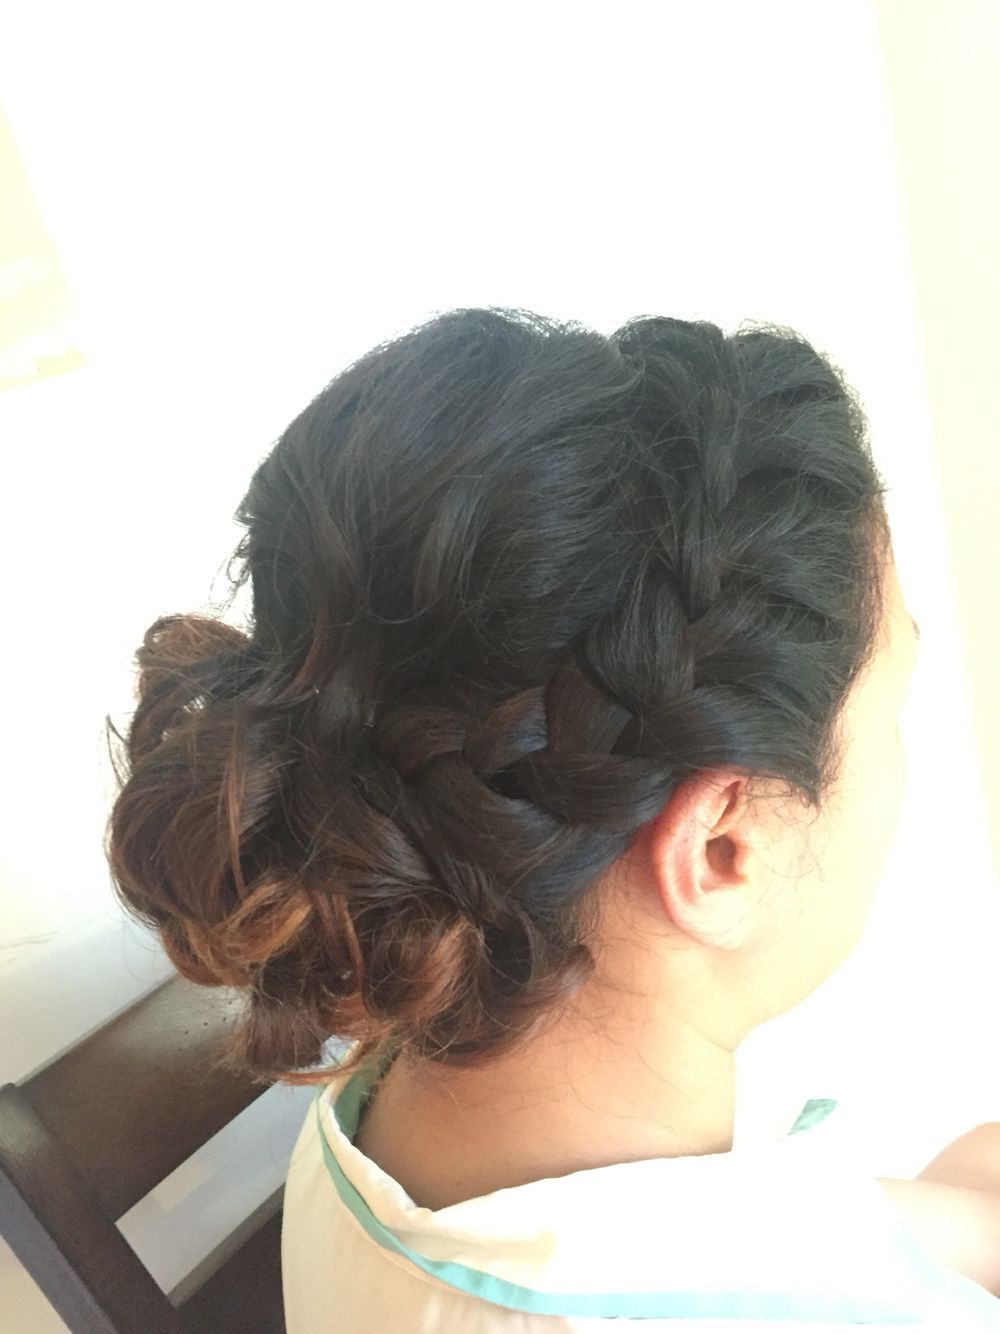 Braid Updo Braided updo, Hair color, Braids